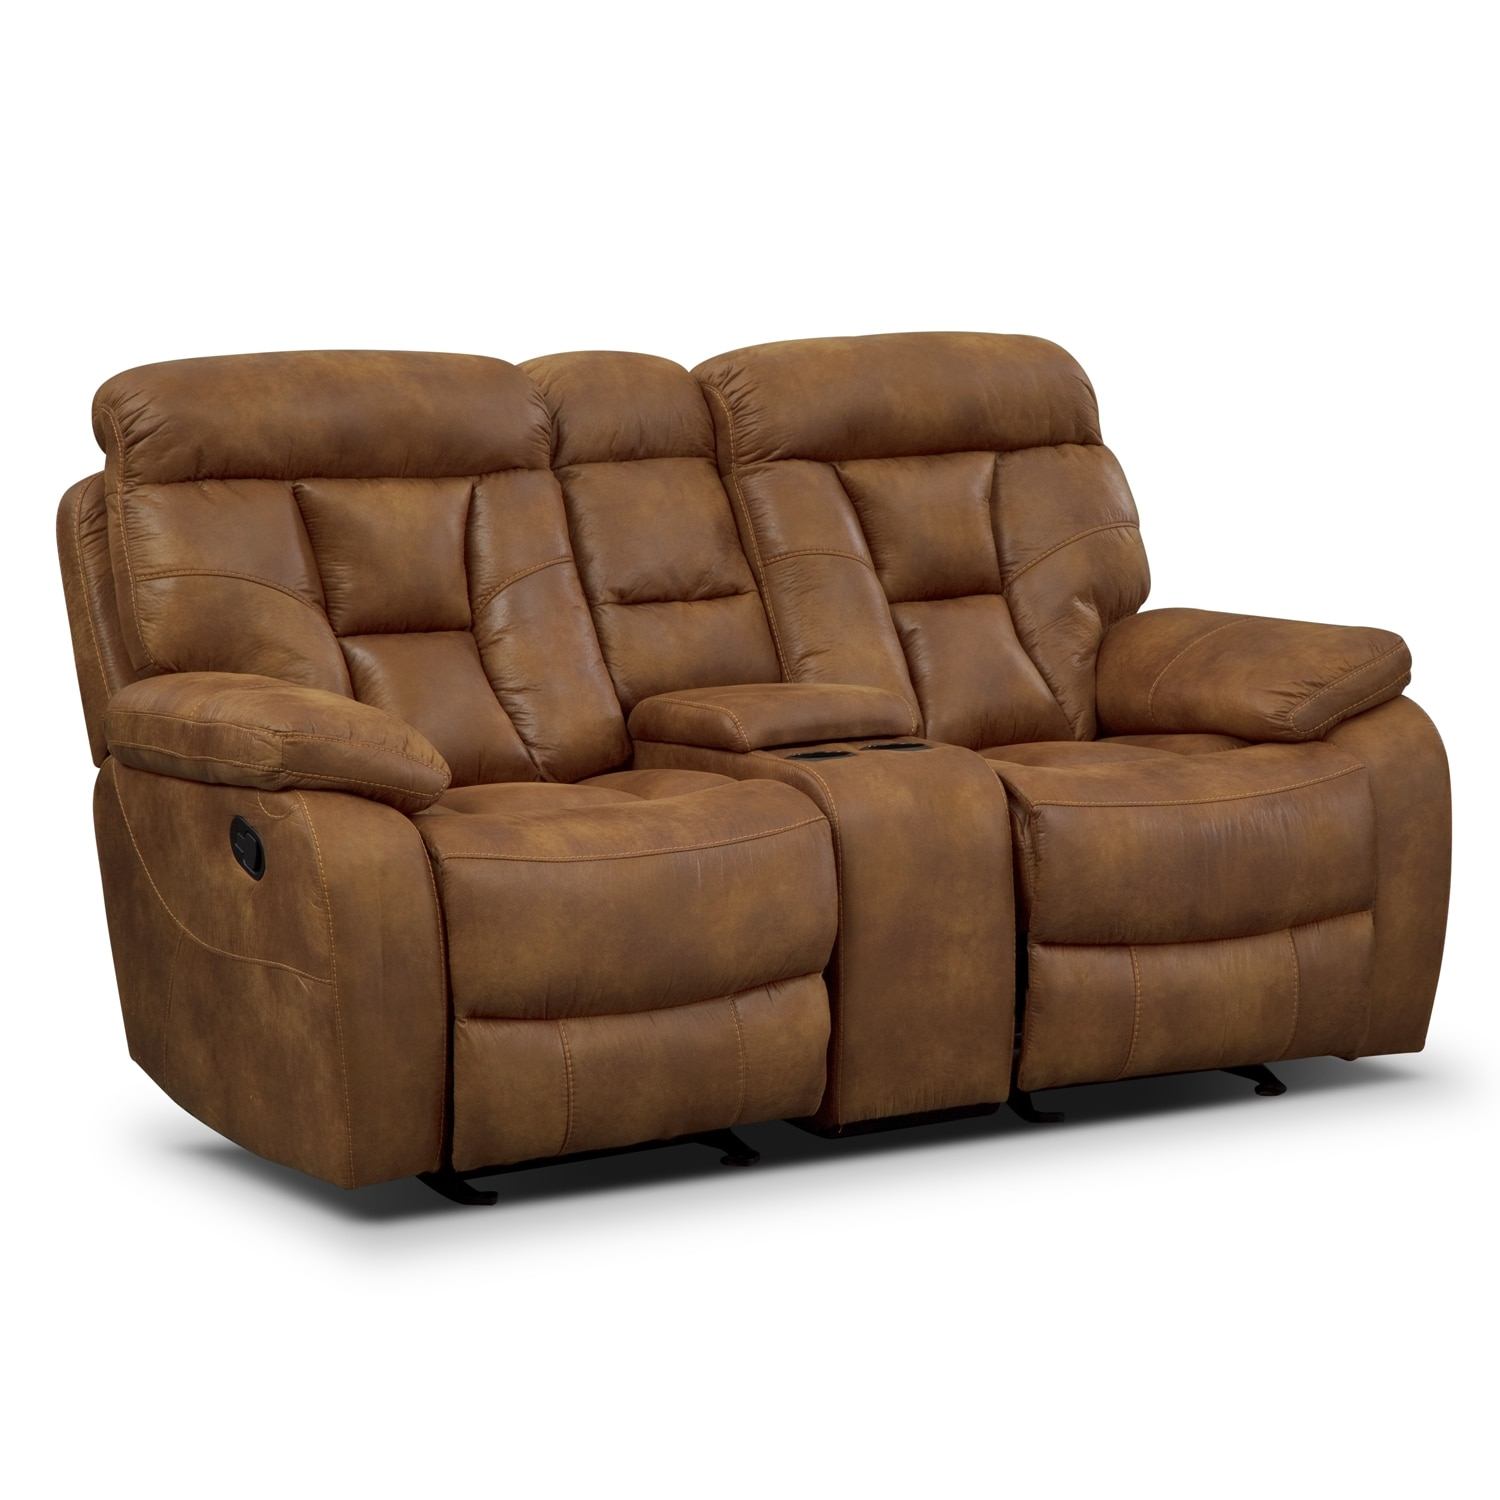 Dakota Ii Glider Reclining Loveseat With Console Value